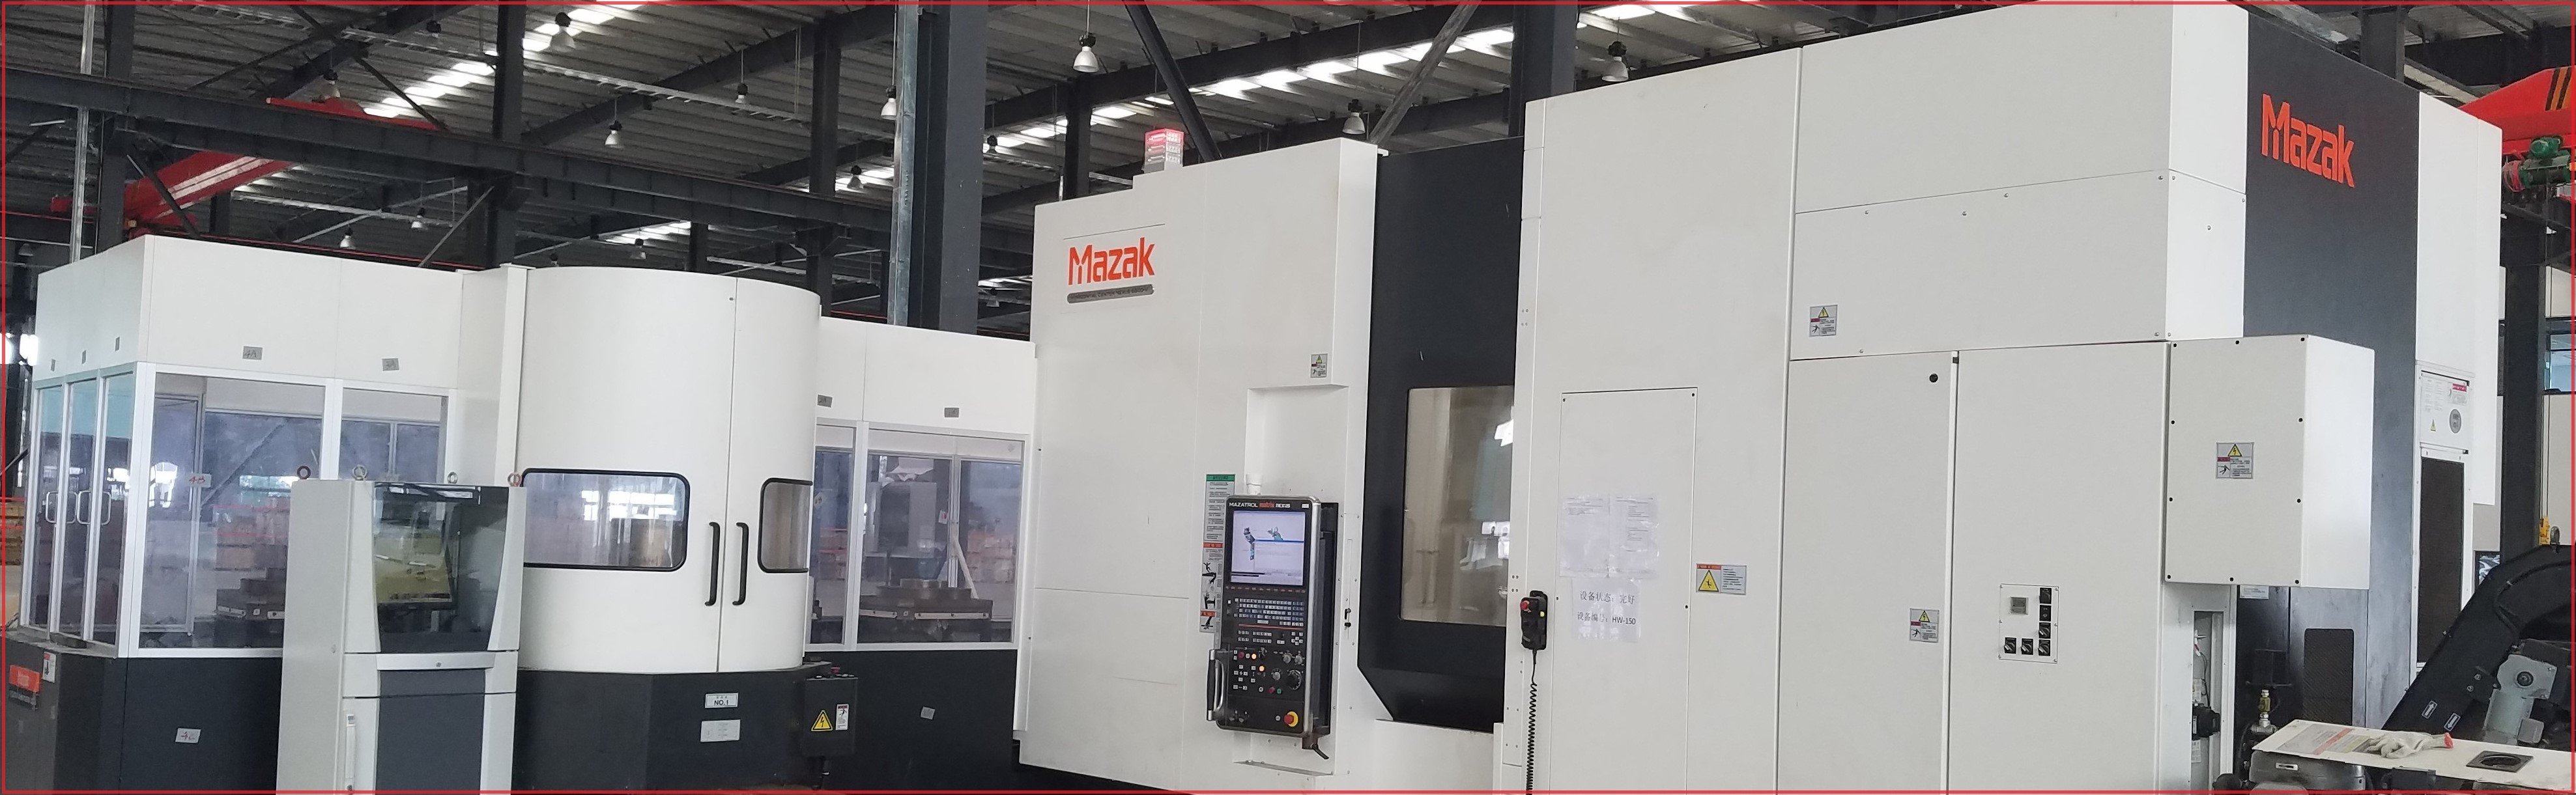 Mazak Machine Center